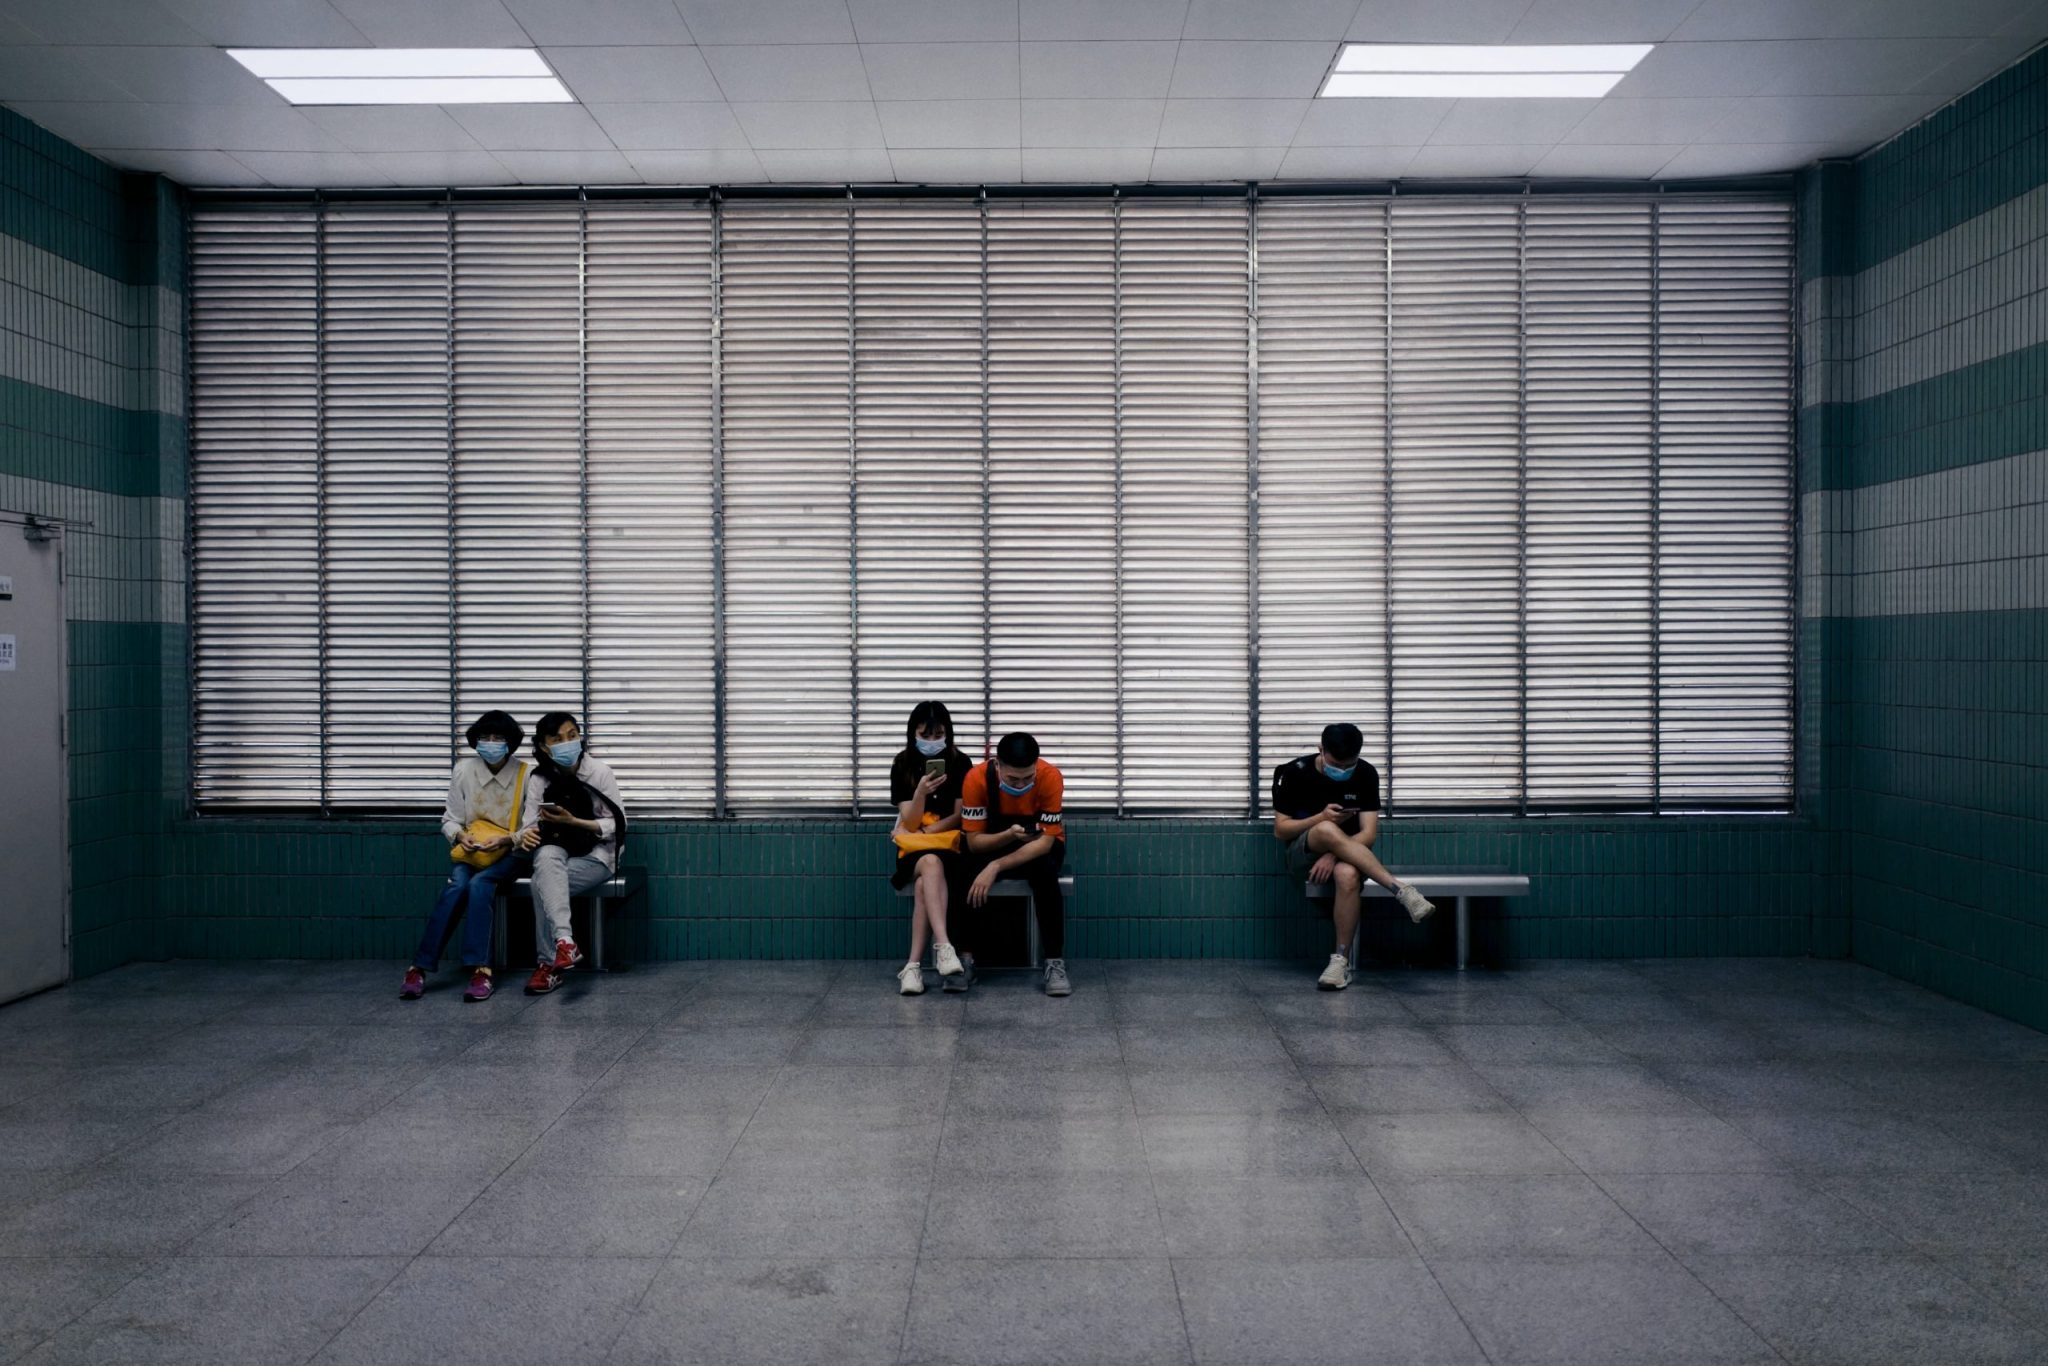 A waiting room during COVID-19